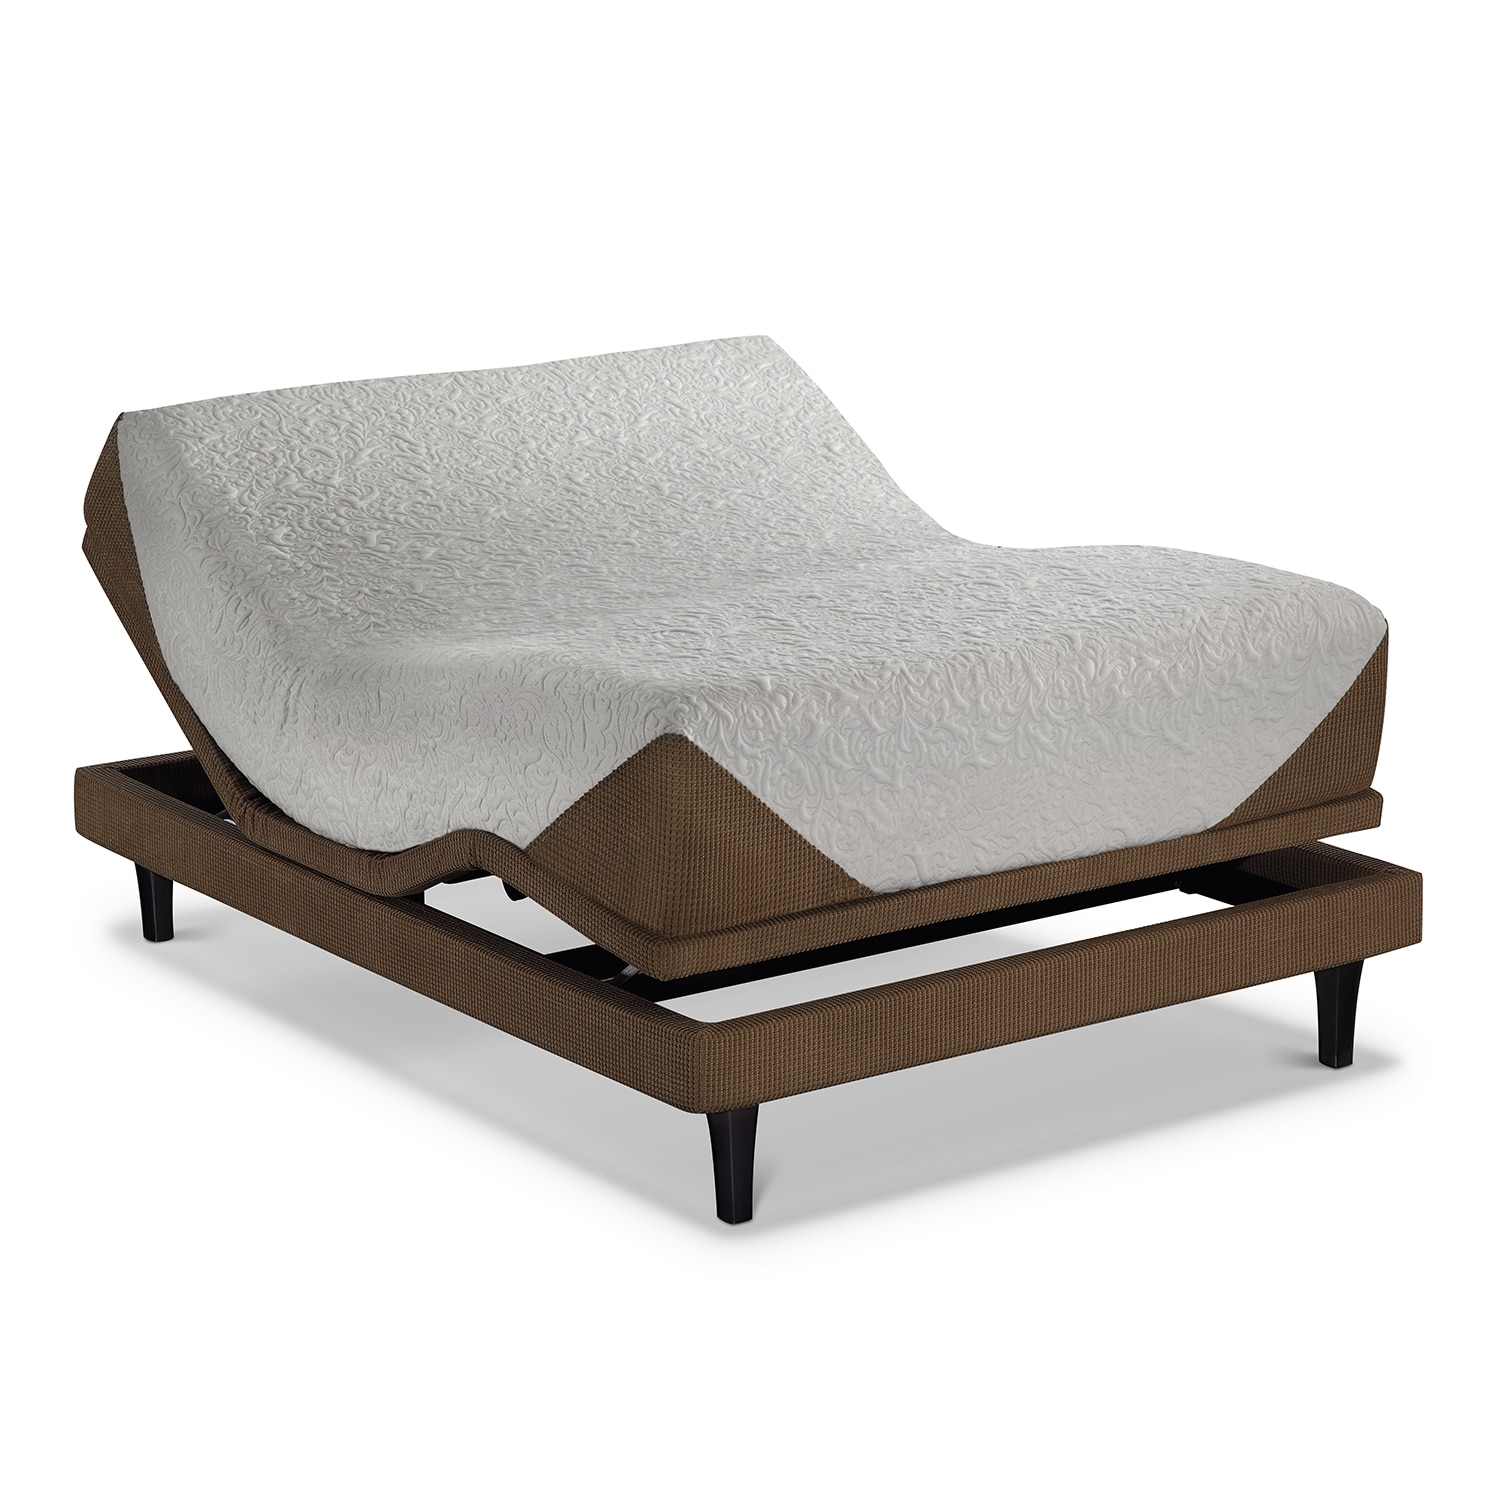 Icomfort Directions Mattress Split King Adjustable Bed